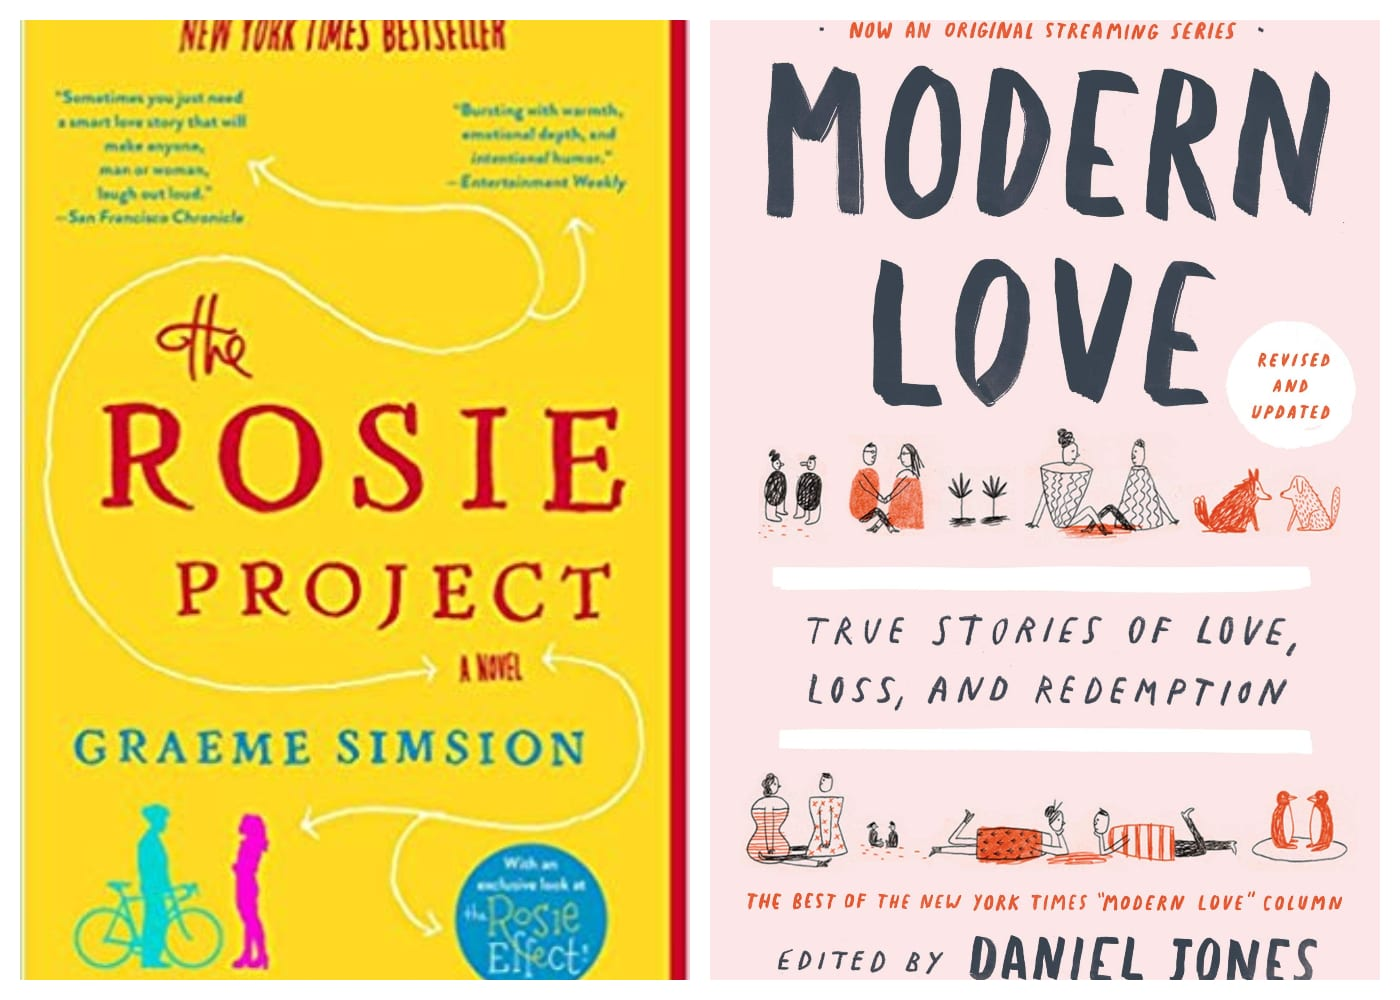 The Rosie Project | Modern Love: True Stories of Love, Loss and Redemption | HoneyKids Book Club